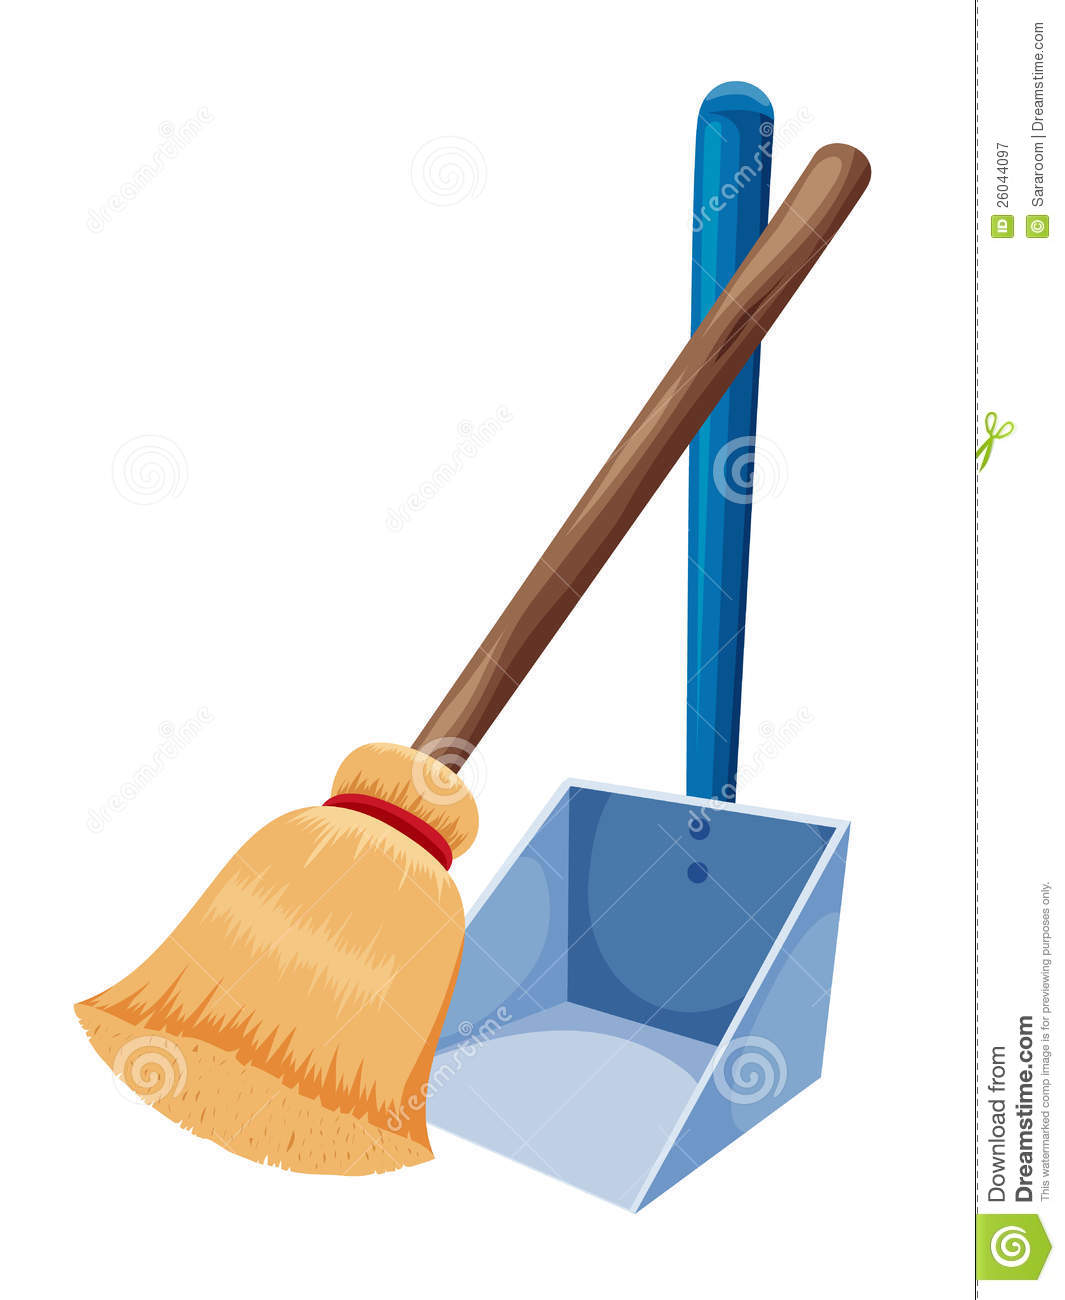 Broom and dustpan royalty free stock photography image 26044097